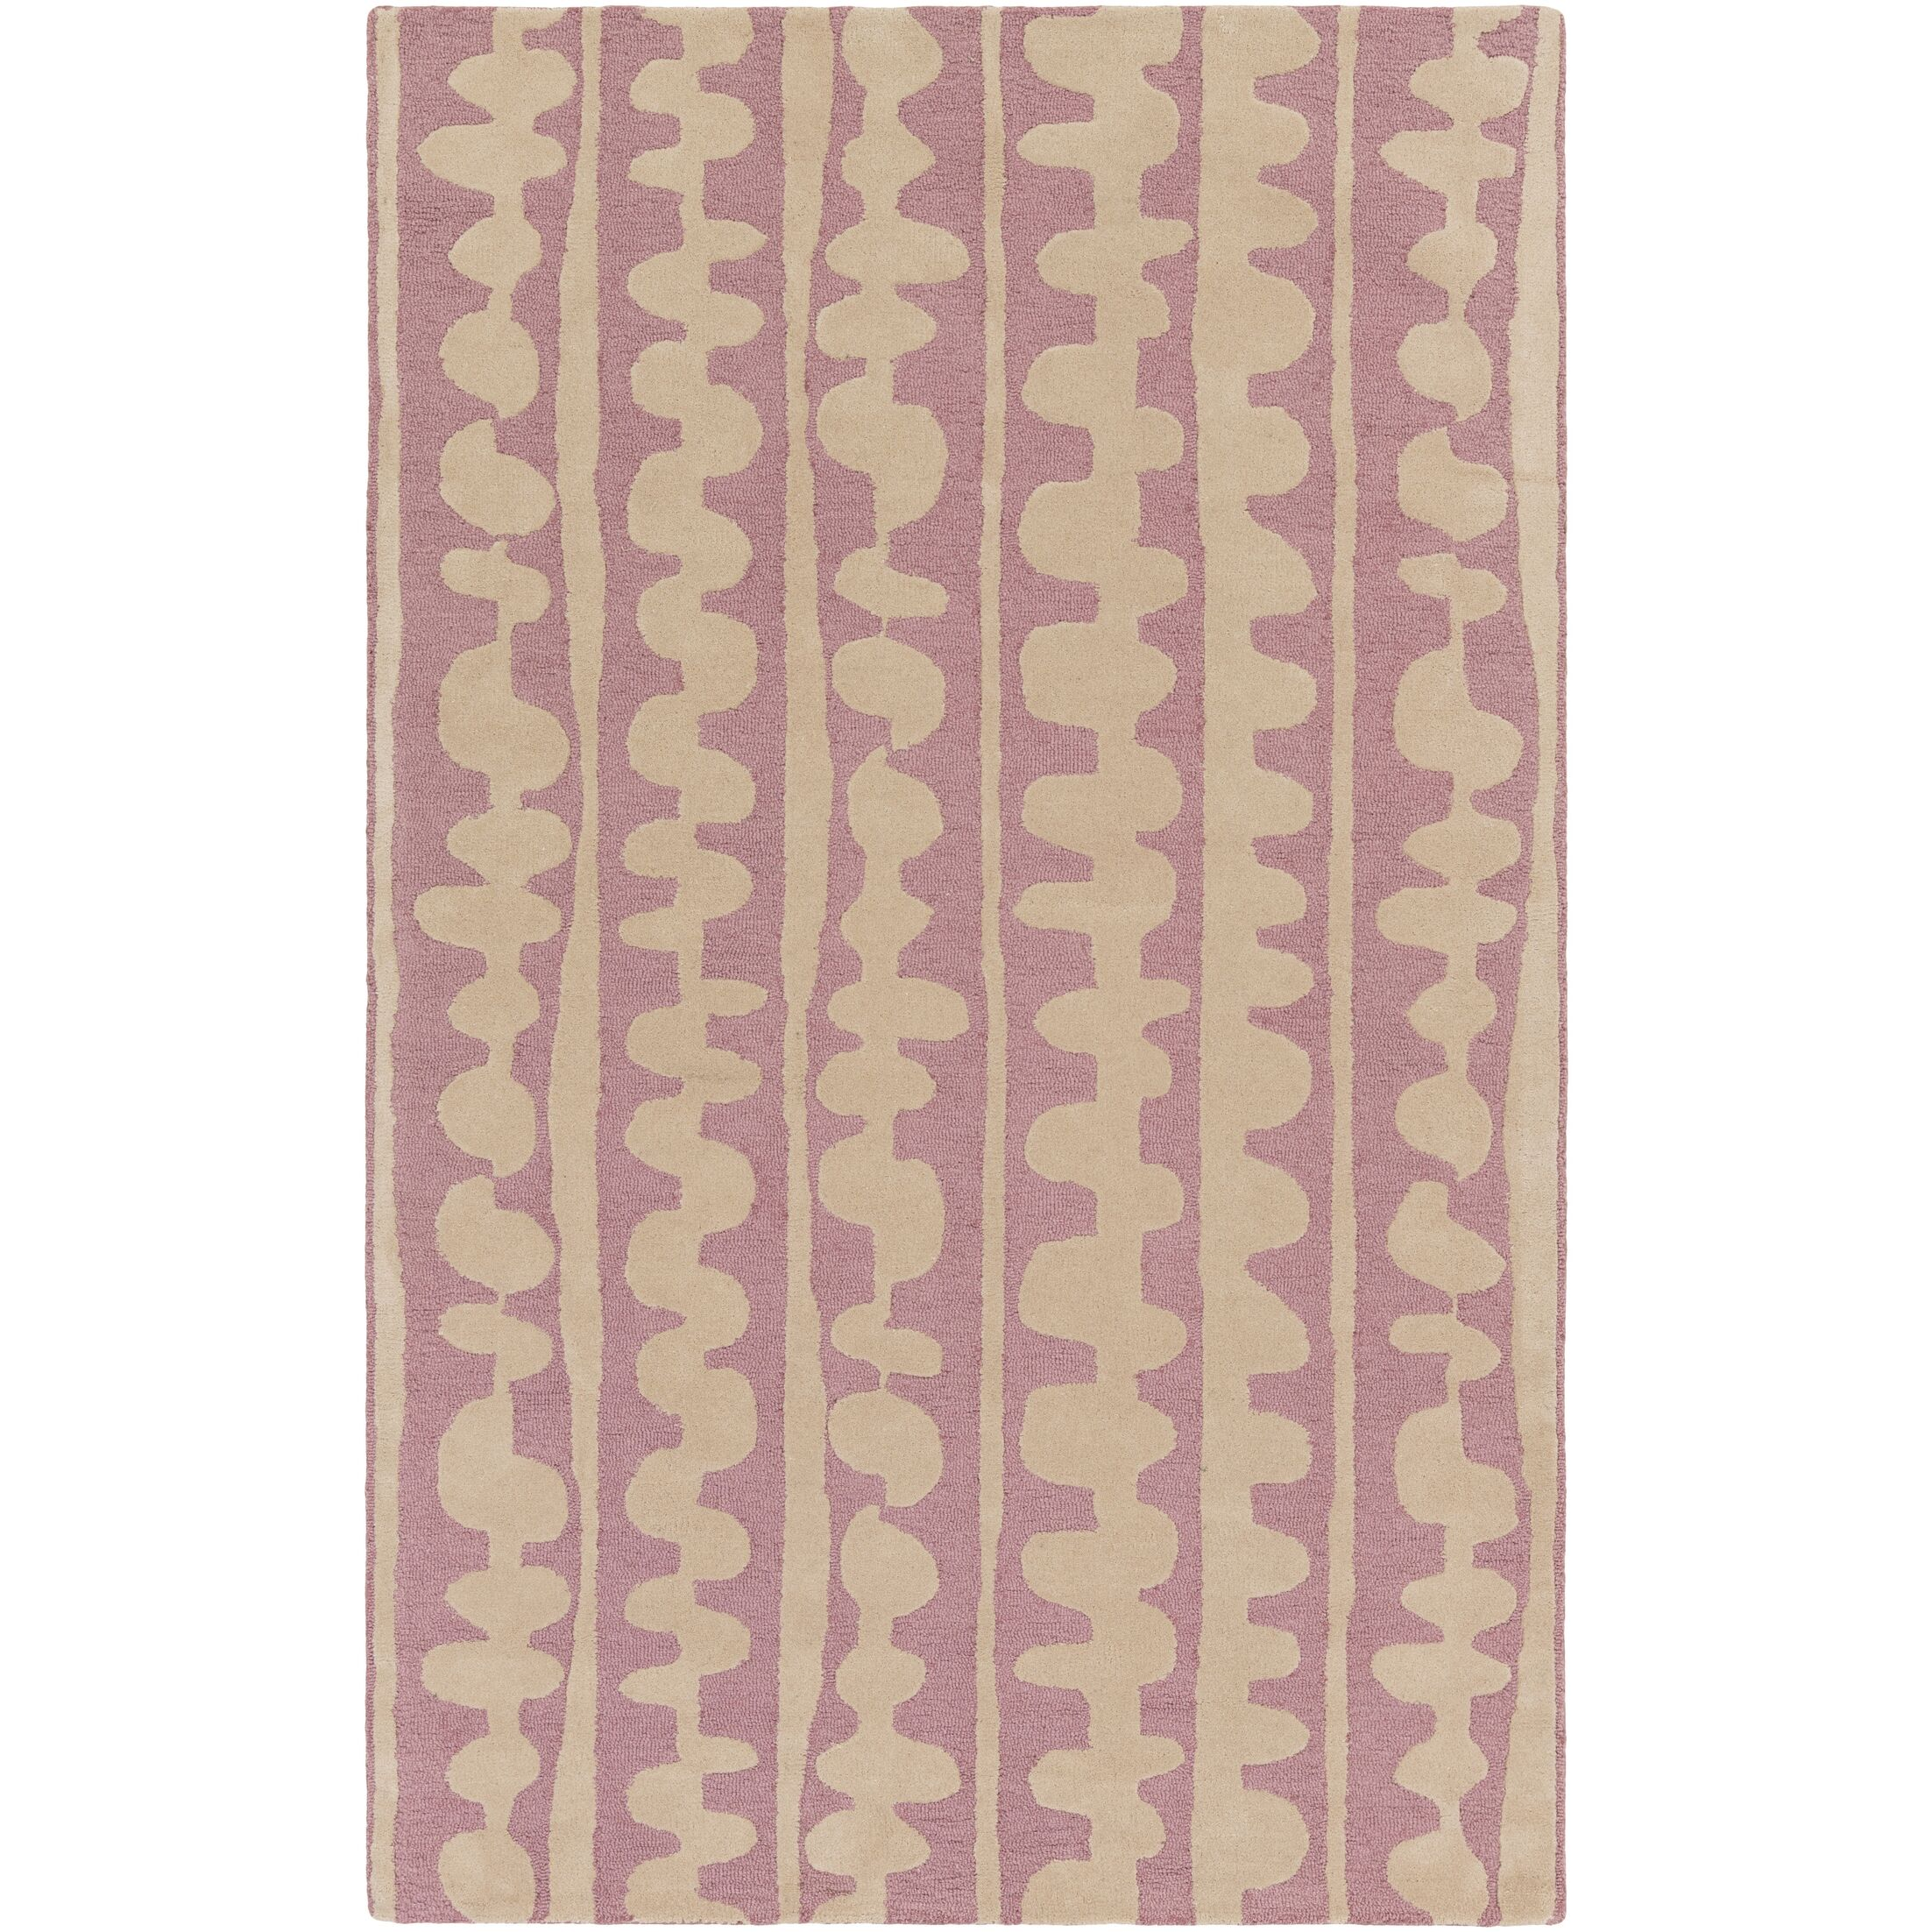 Decorativa Hand-Tufted Pink/Neutral Area Rug Rug Size: Rectangle 3'3